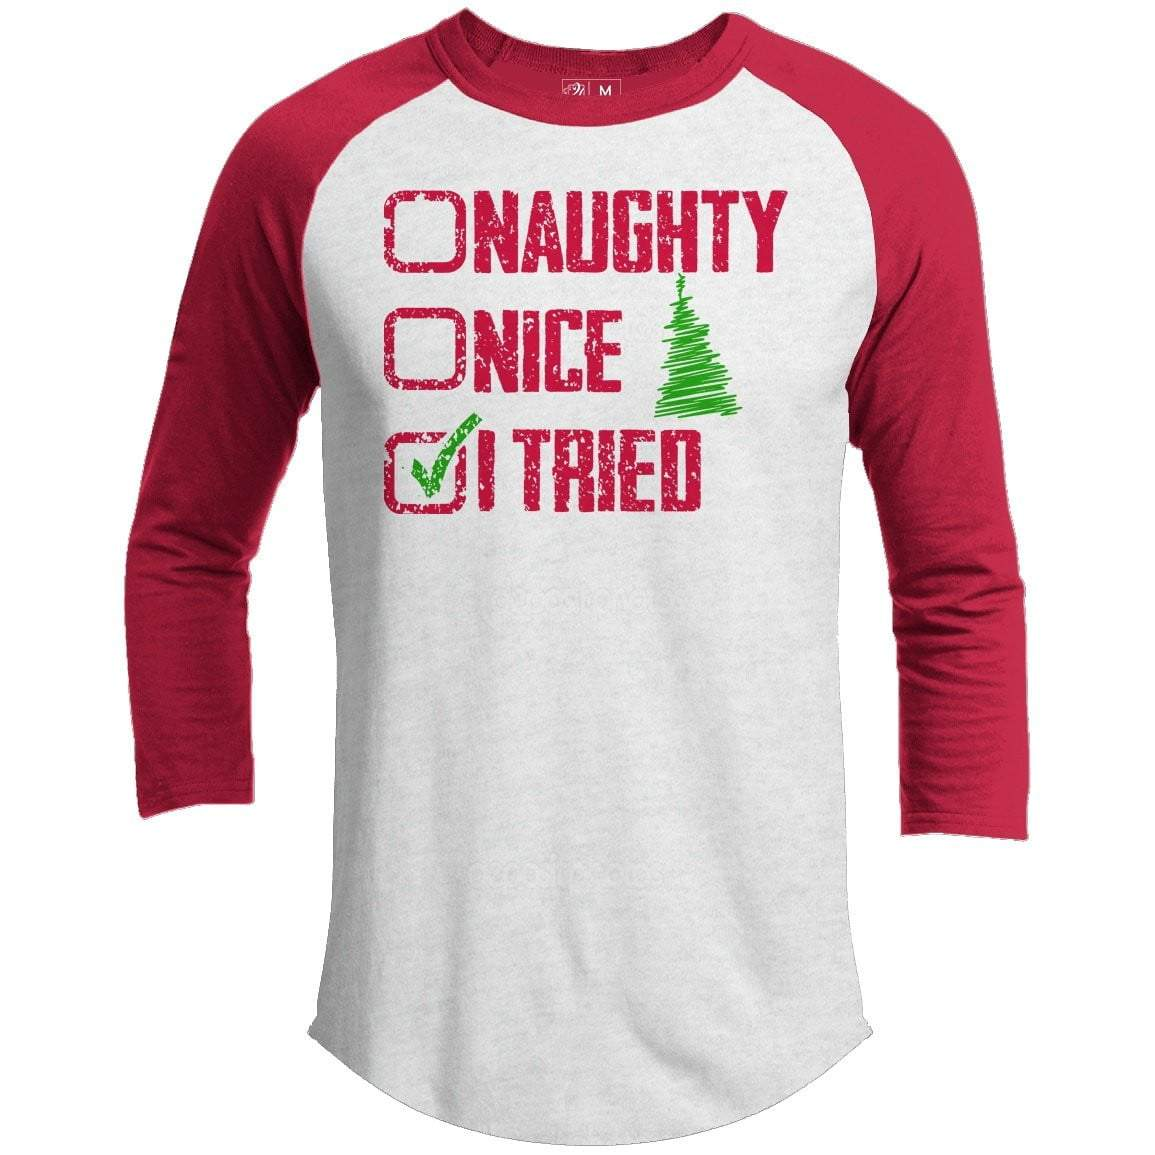 NAUGHTY NICE I TRIED Premium Youth Christmas Raglan